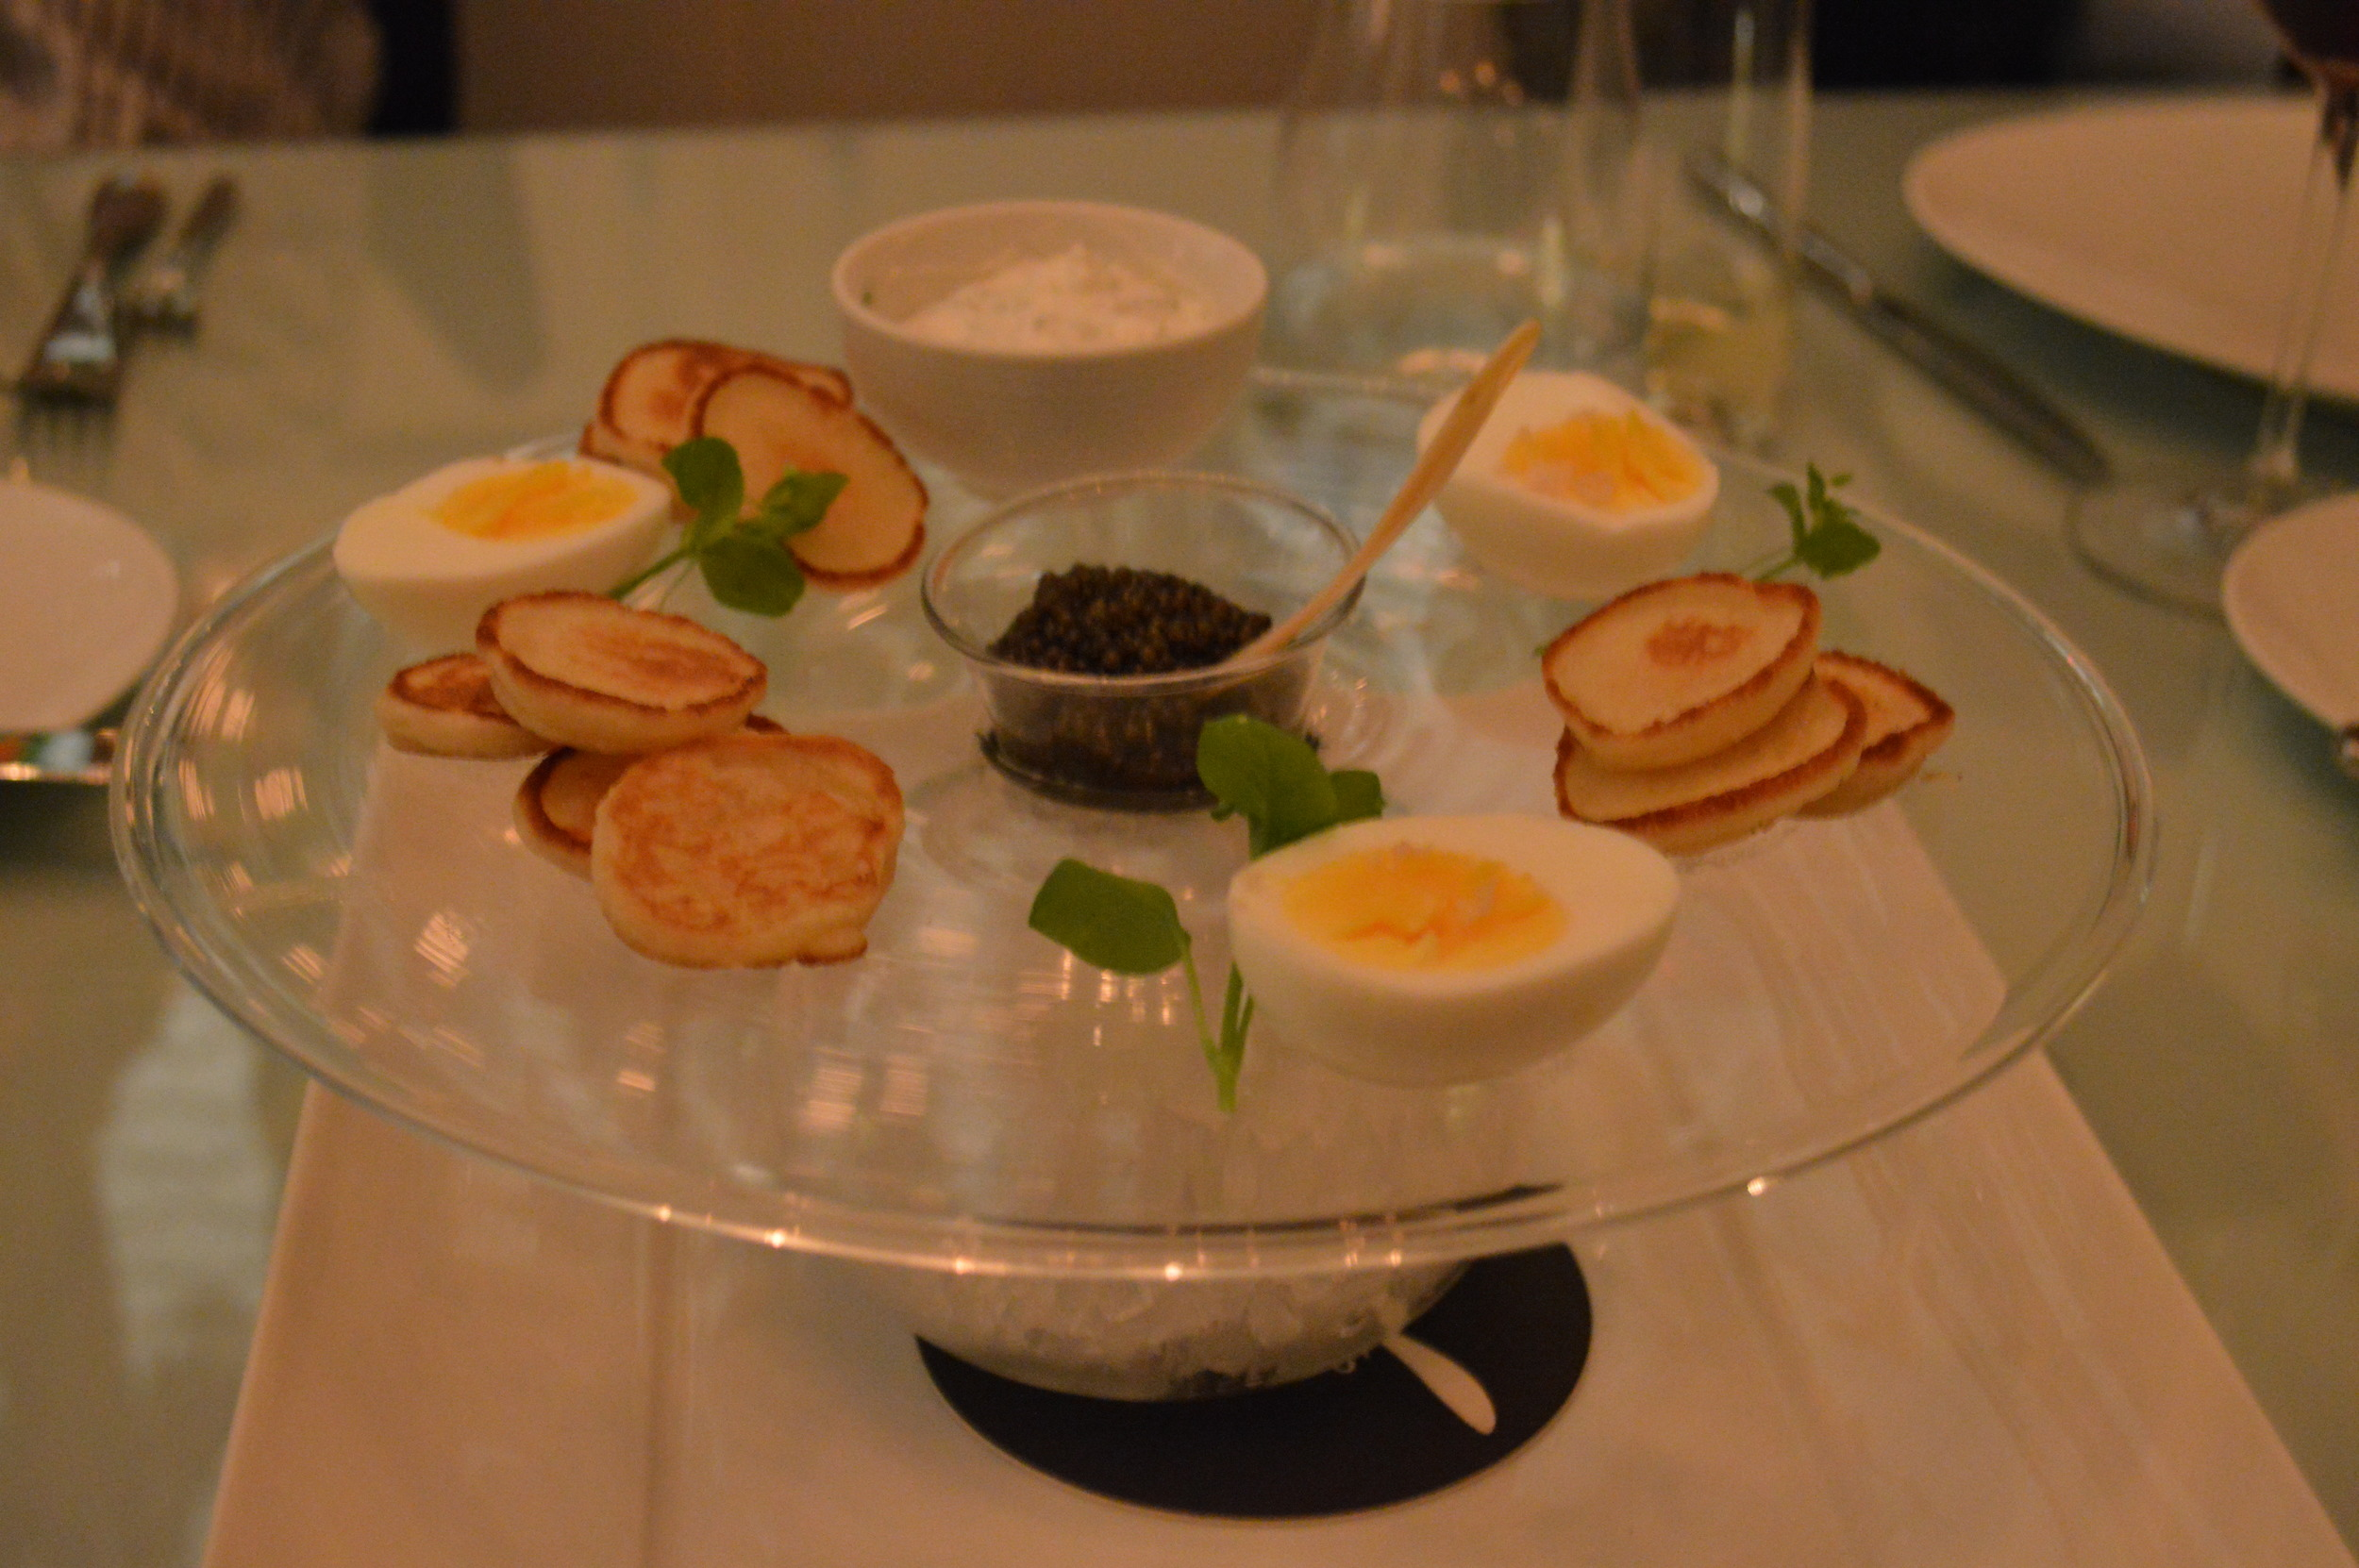 Spoon - Hard Boiled Eggs + Caviar